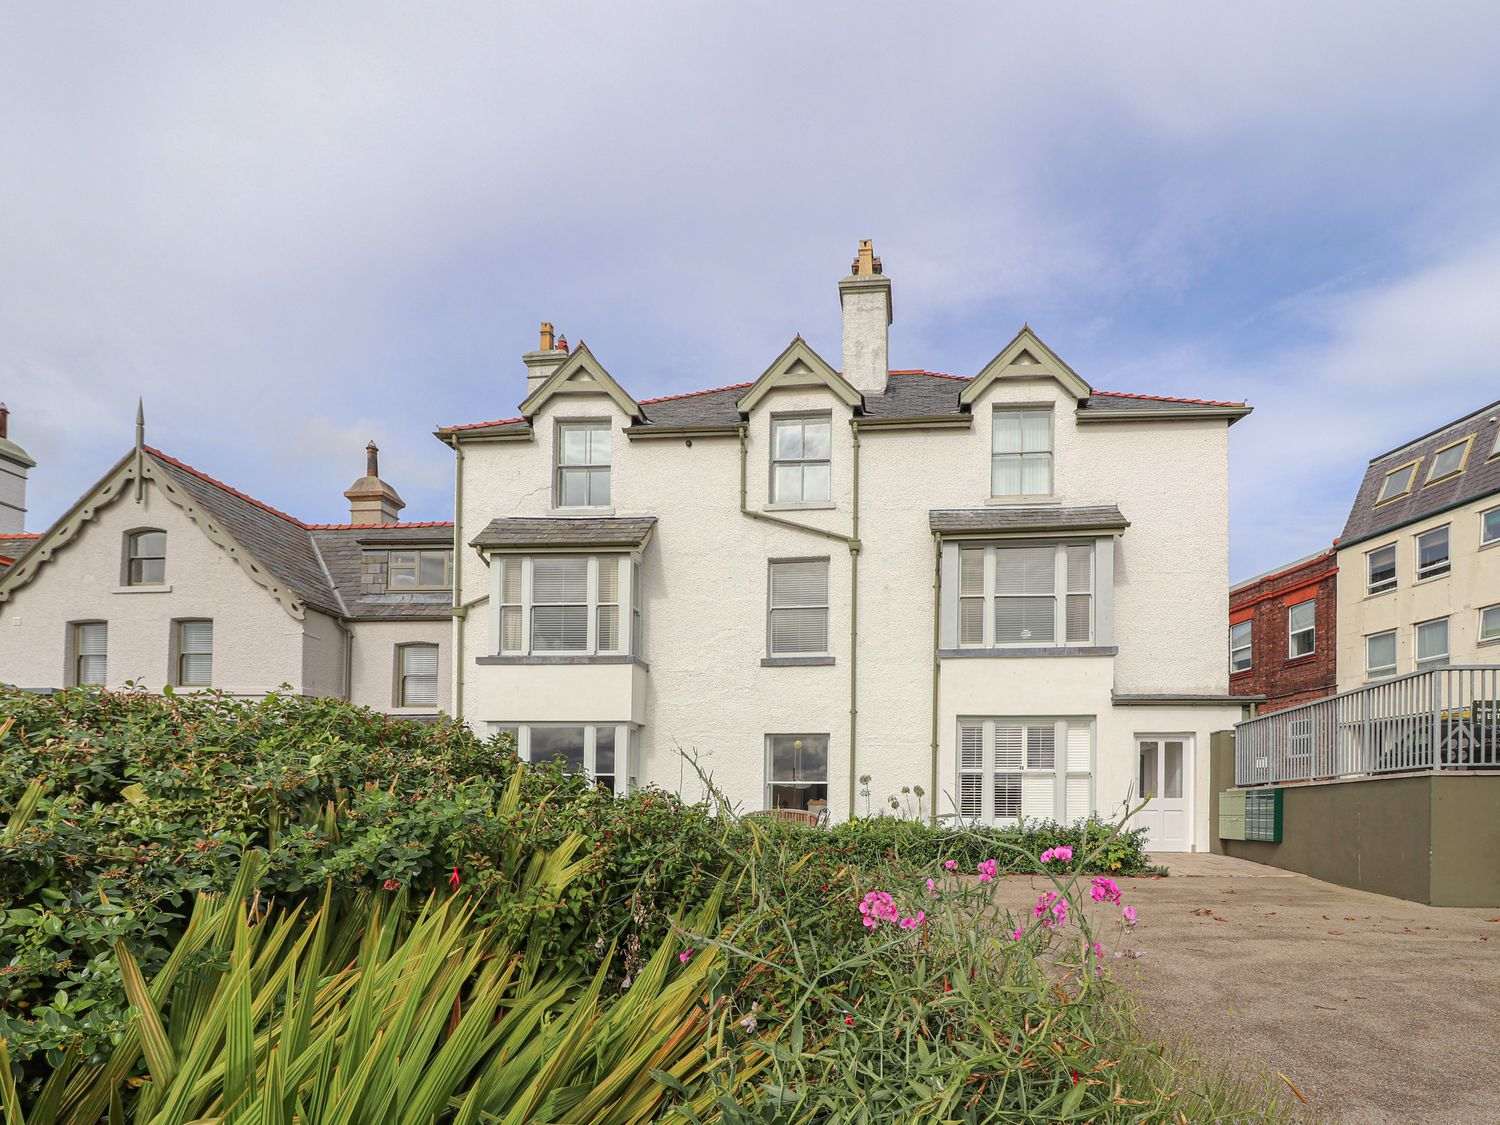 3 Deganwy Castle Apartments - North Wales - 1022432 - photo 1